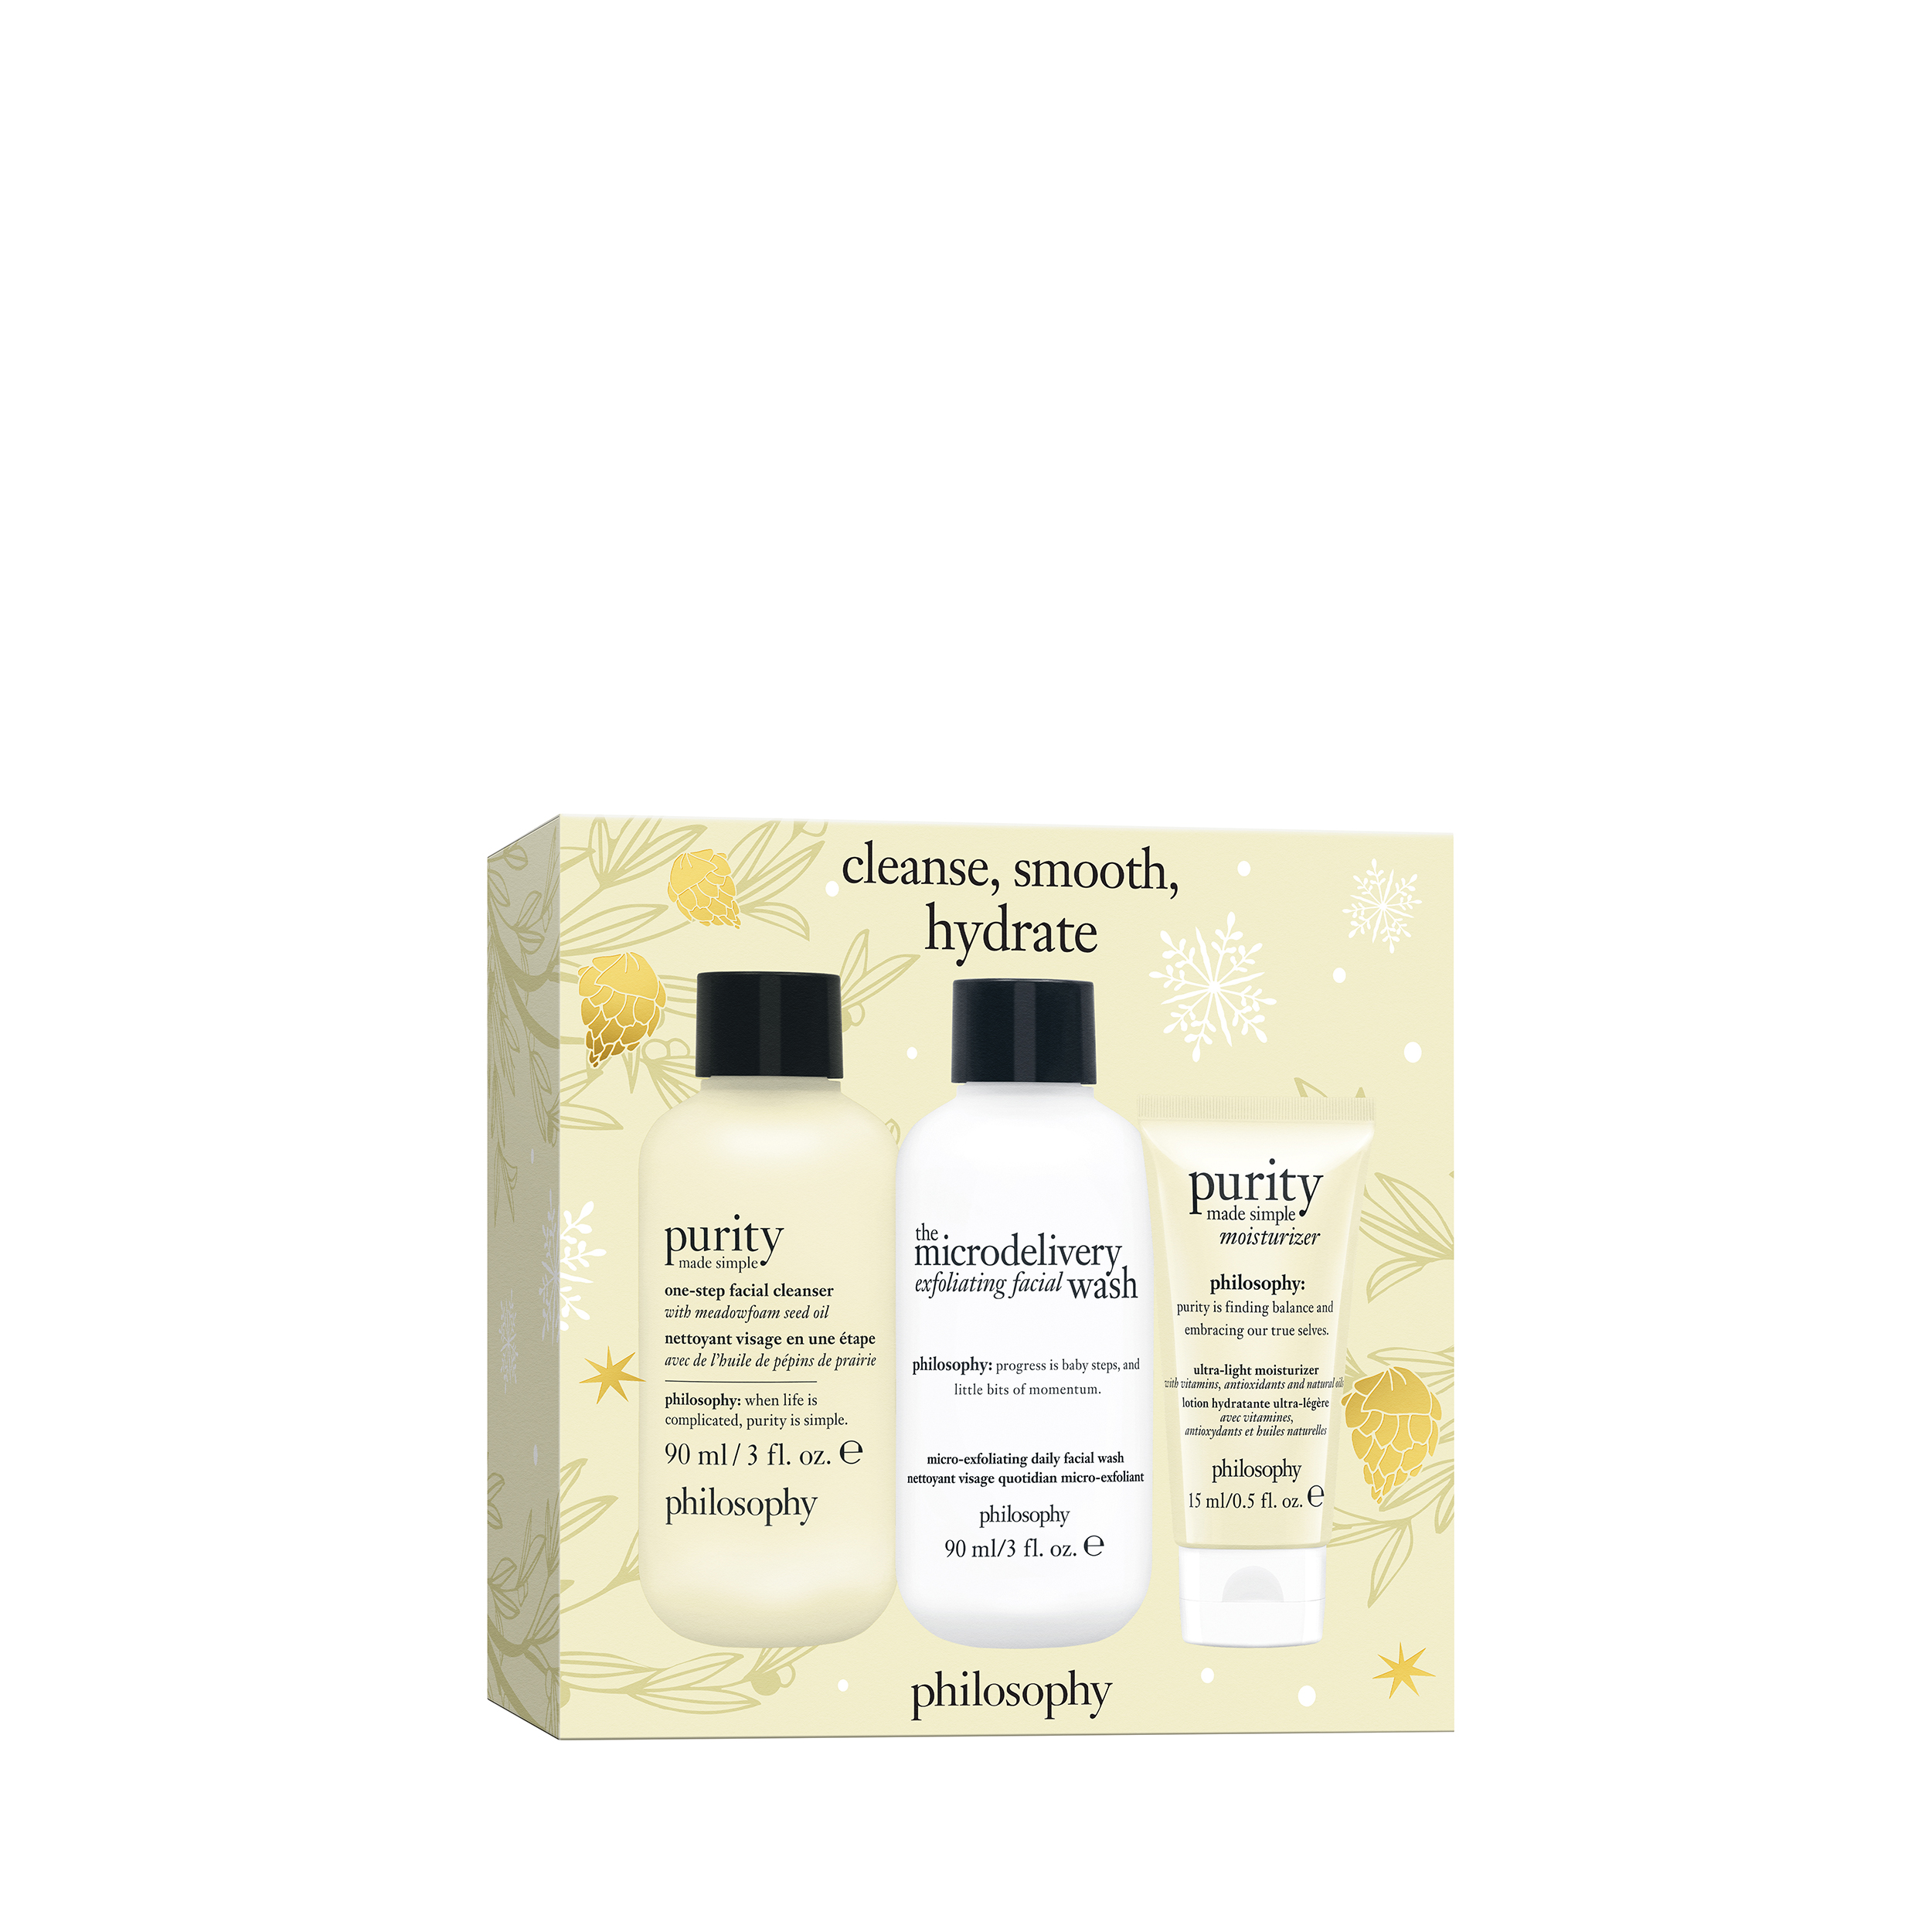 cleanse, smooth & hydrate set 3-piece skin care set